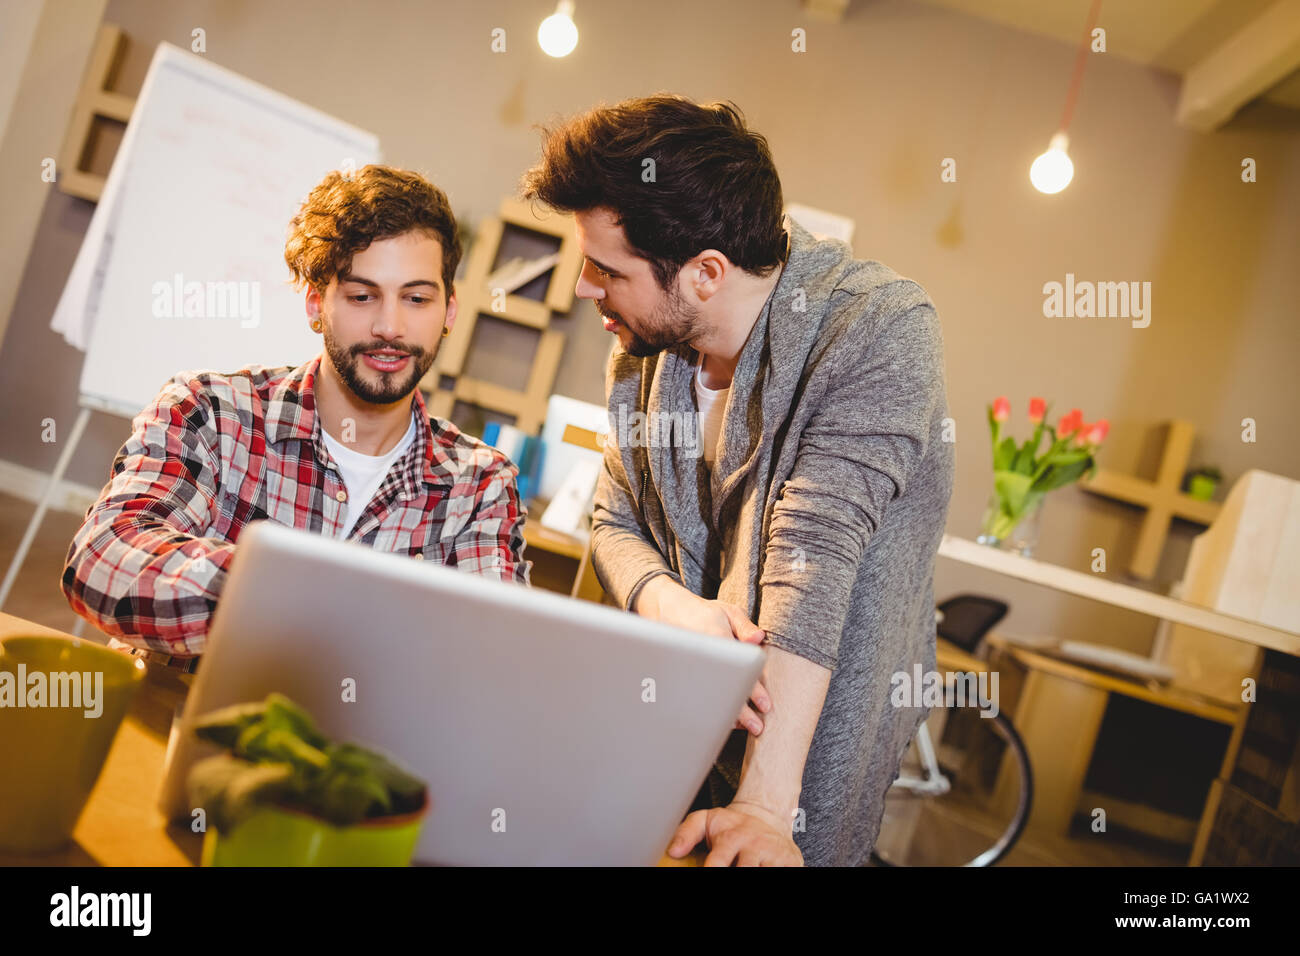 Graphic designer using laptop with his coworker - Stock Image